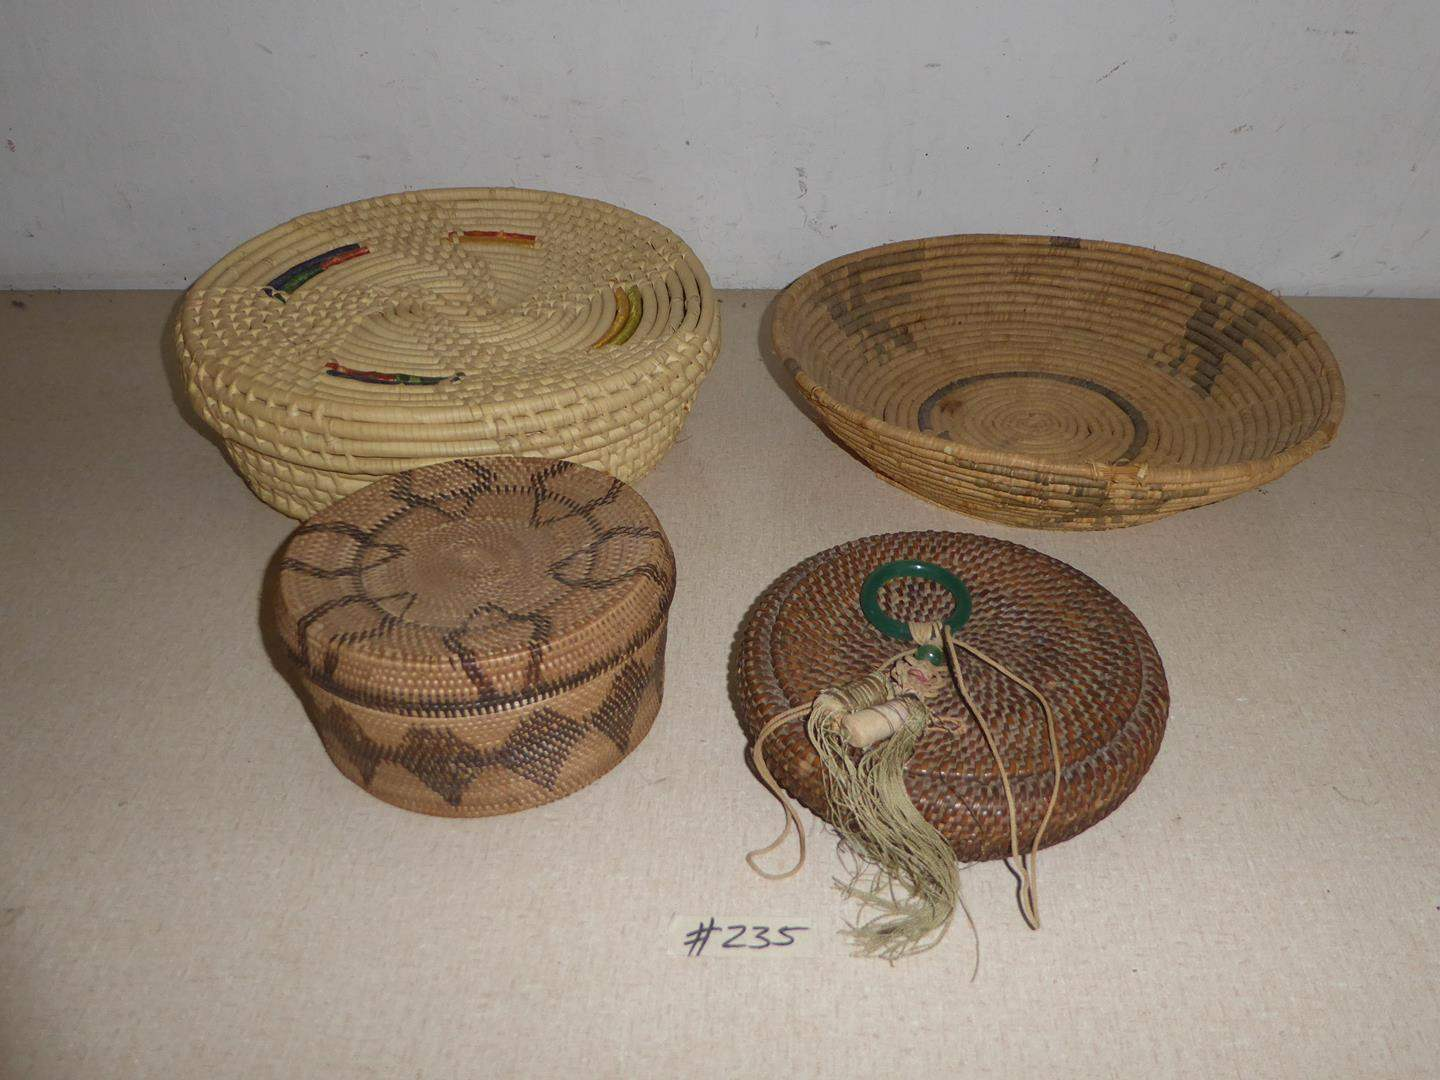 Lot # 235 - Four Vintage Baskets (main image)